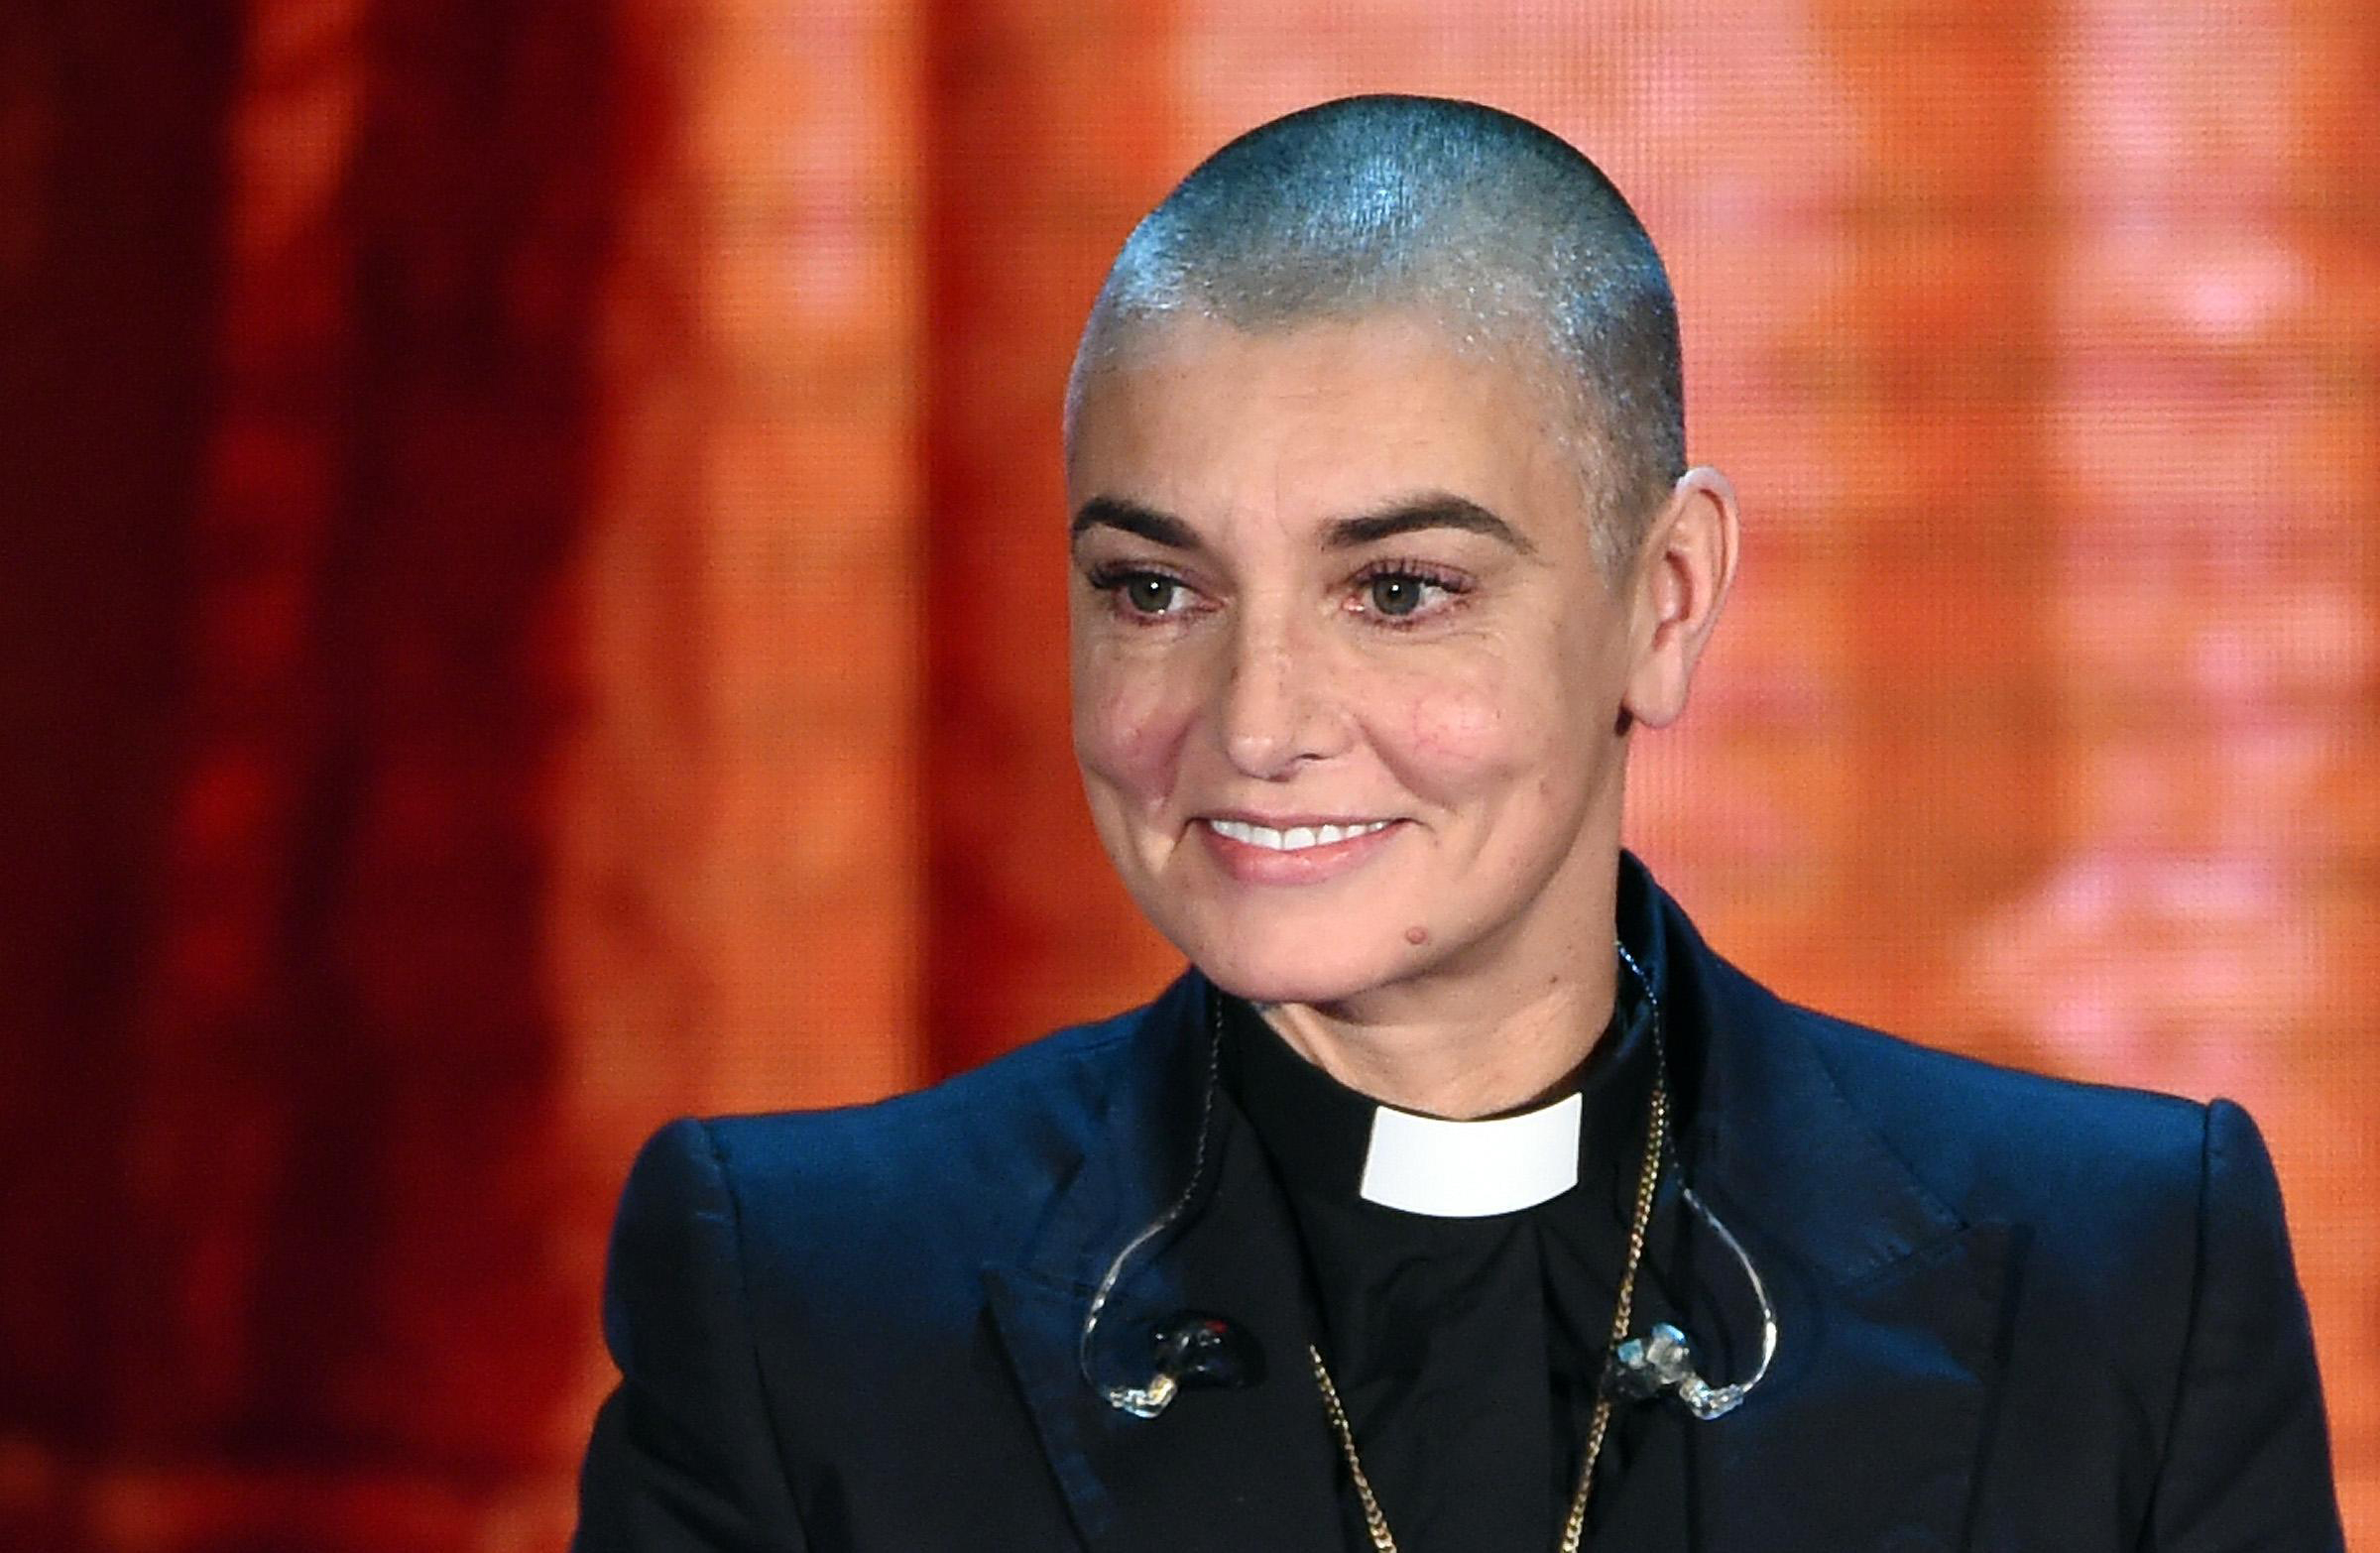 Sinead OConnor Safe After Alluding to Suicide in Video